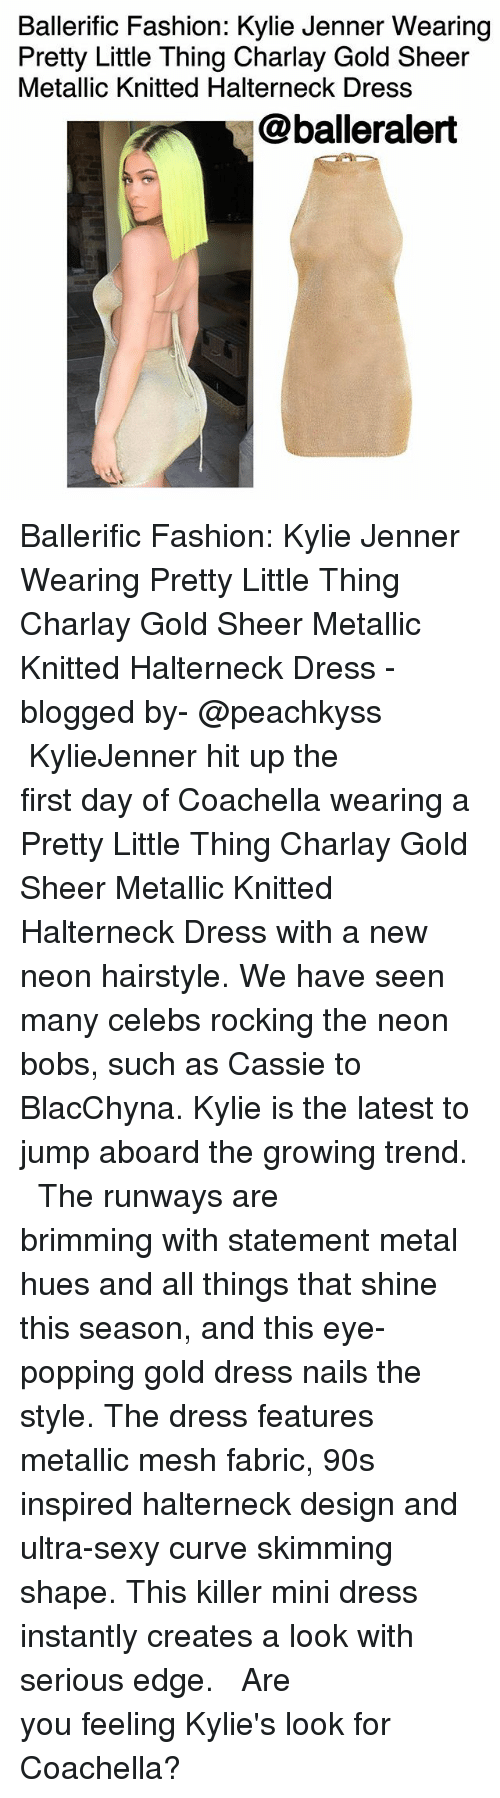 Coachella, Curving, and Fashion: Ballerific Fashion: Kylie Jenner Wearing  Pretty Little Thing Charlay Gold Sheer  Metallic Knitted Halterneck Dress  @balleralert Ballerific Fashion: Kylie Jenner Wearing Pretty Little Thing Charlay Gold Sheer Metallic Knitted Halterneck Dress -blogged by- @peachkyss ⠀⠀⠀⠀⠀⠀⠀⠀⠀ ⠀⠀⠀⠀⠀⠀⠀⠀⠀ KylieJenner hit up the first day of Coachella wearing a Pretty Little Thing Charlay Gold Sheer Metallic Knitted Halterneck Dress with a new neon hairstyle. We have seen many celebs rocking the neon bobs, such as Cassie to BlacChyna. Kylie is the latest to jump aboard the growing trend. ⠀⠀⠀⠀⠀⠀⠀⠀⠀ ⠀⠀⠀⠀⠀⠀⠀⠀⠀ The runways are brimming with statement metal hues and all things that shine this season, and this eye-popping gold dress nails the style. The dress features metallic mesh fabric, 90s inspired halterneck design and ultra-sexy curve skimming shape. This killer mini dress instantly creates a look with serious edge. ⠀⠀⠀⠀⠀⠀⠀⠀⠀ ⠀⠀⠀⠀⠀⠀⠀⠀⠀ Are you feeling Kylie's look for Coachella?